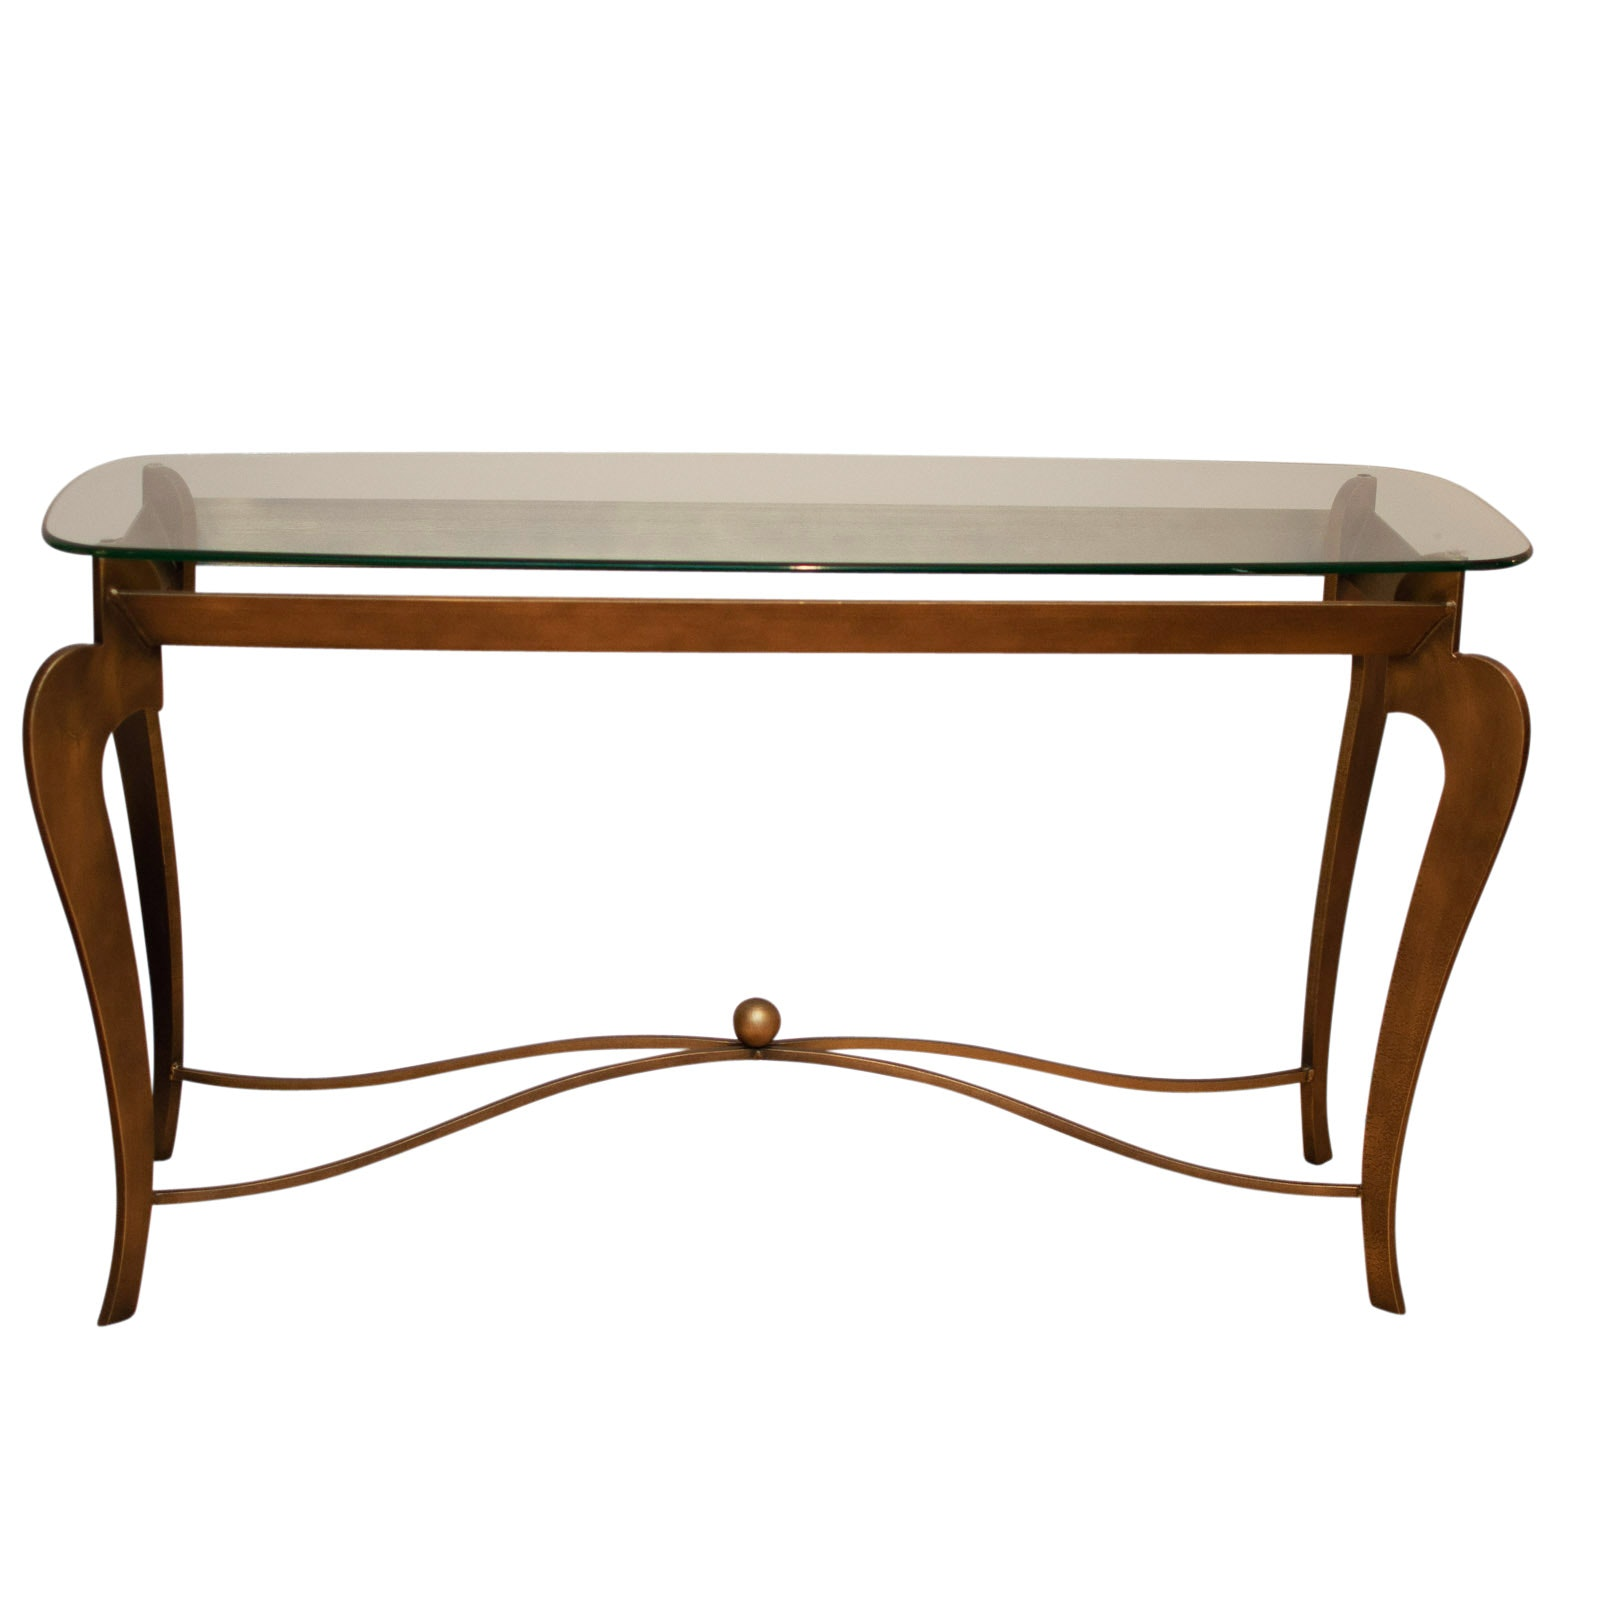 Metal Console Table with Glass Top by Swaim Furniture